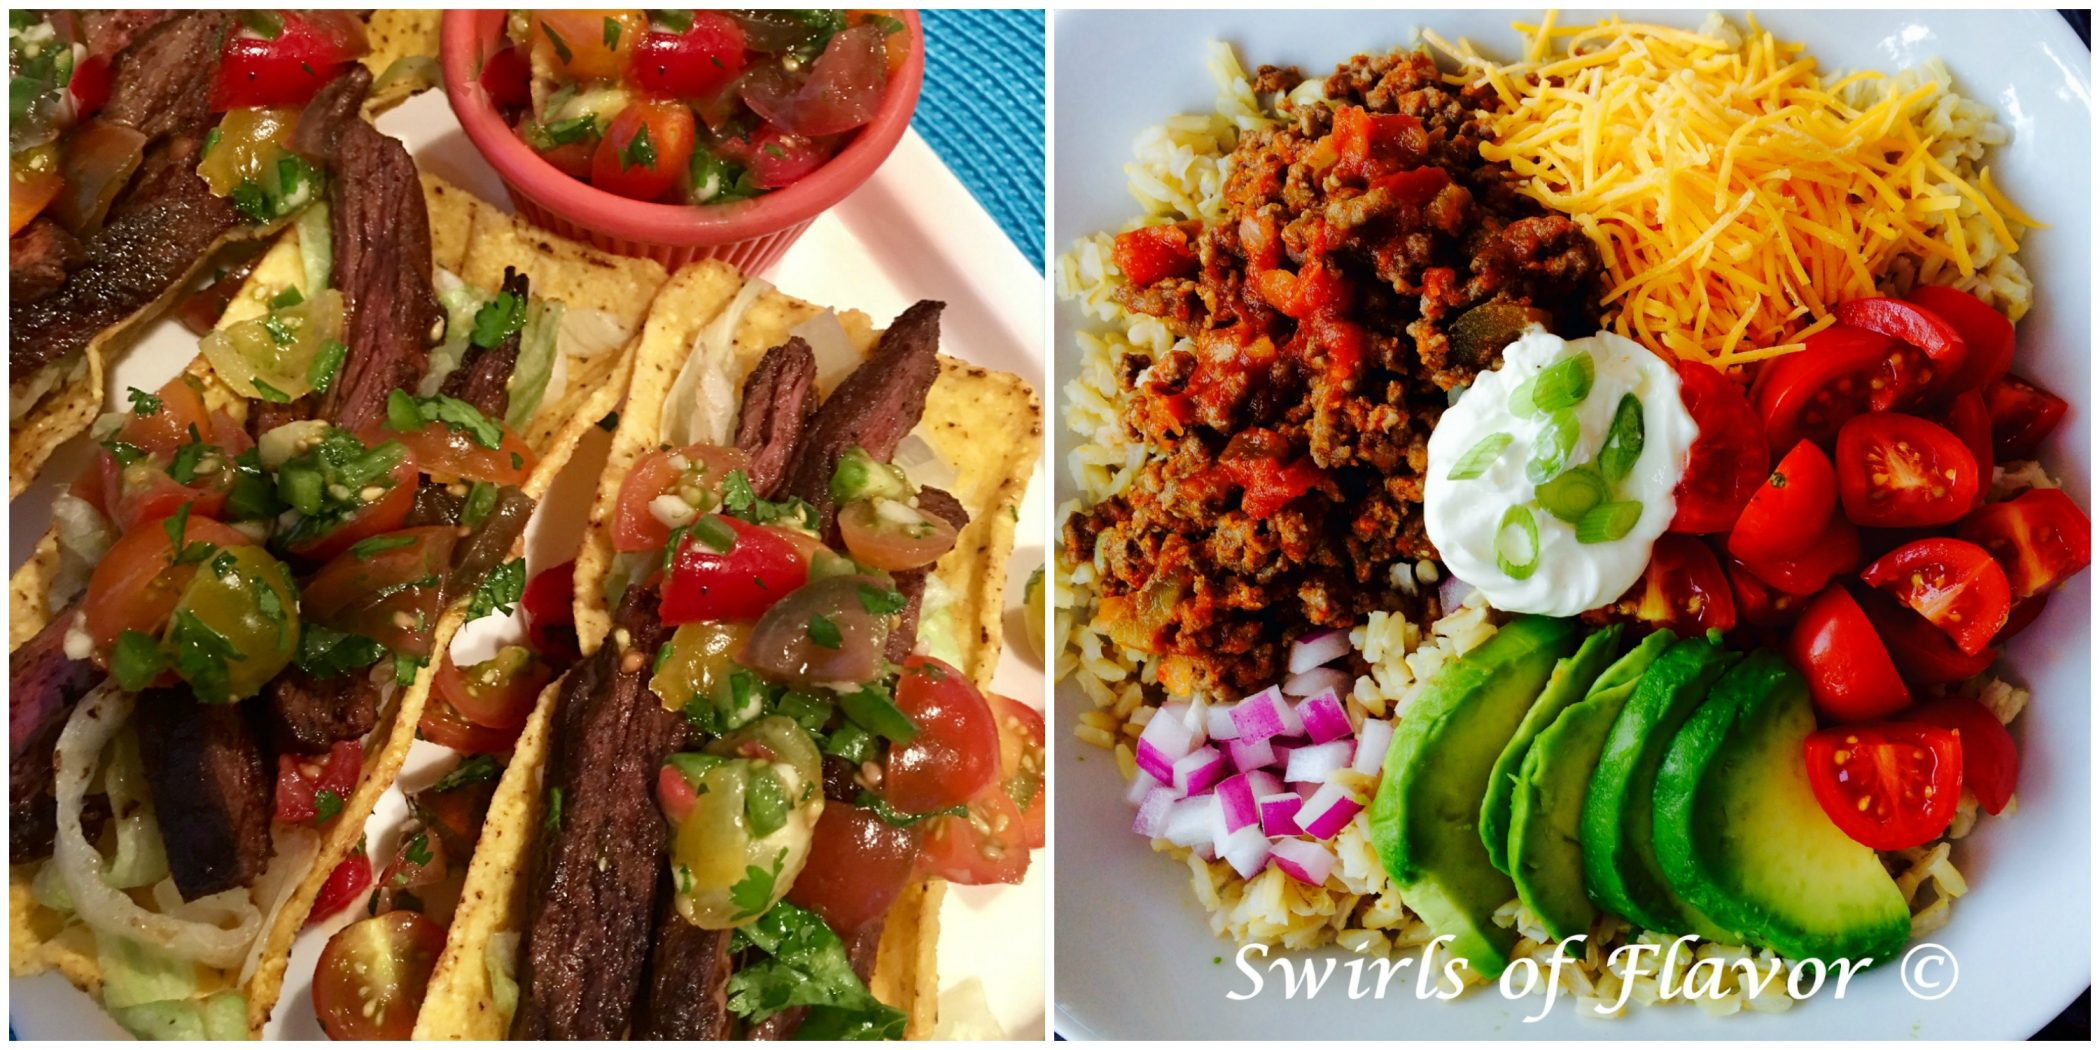 Spiced Skirt Steak Tacos and Brown Rice Taco Bowl